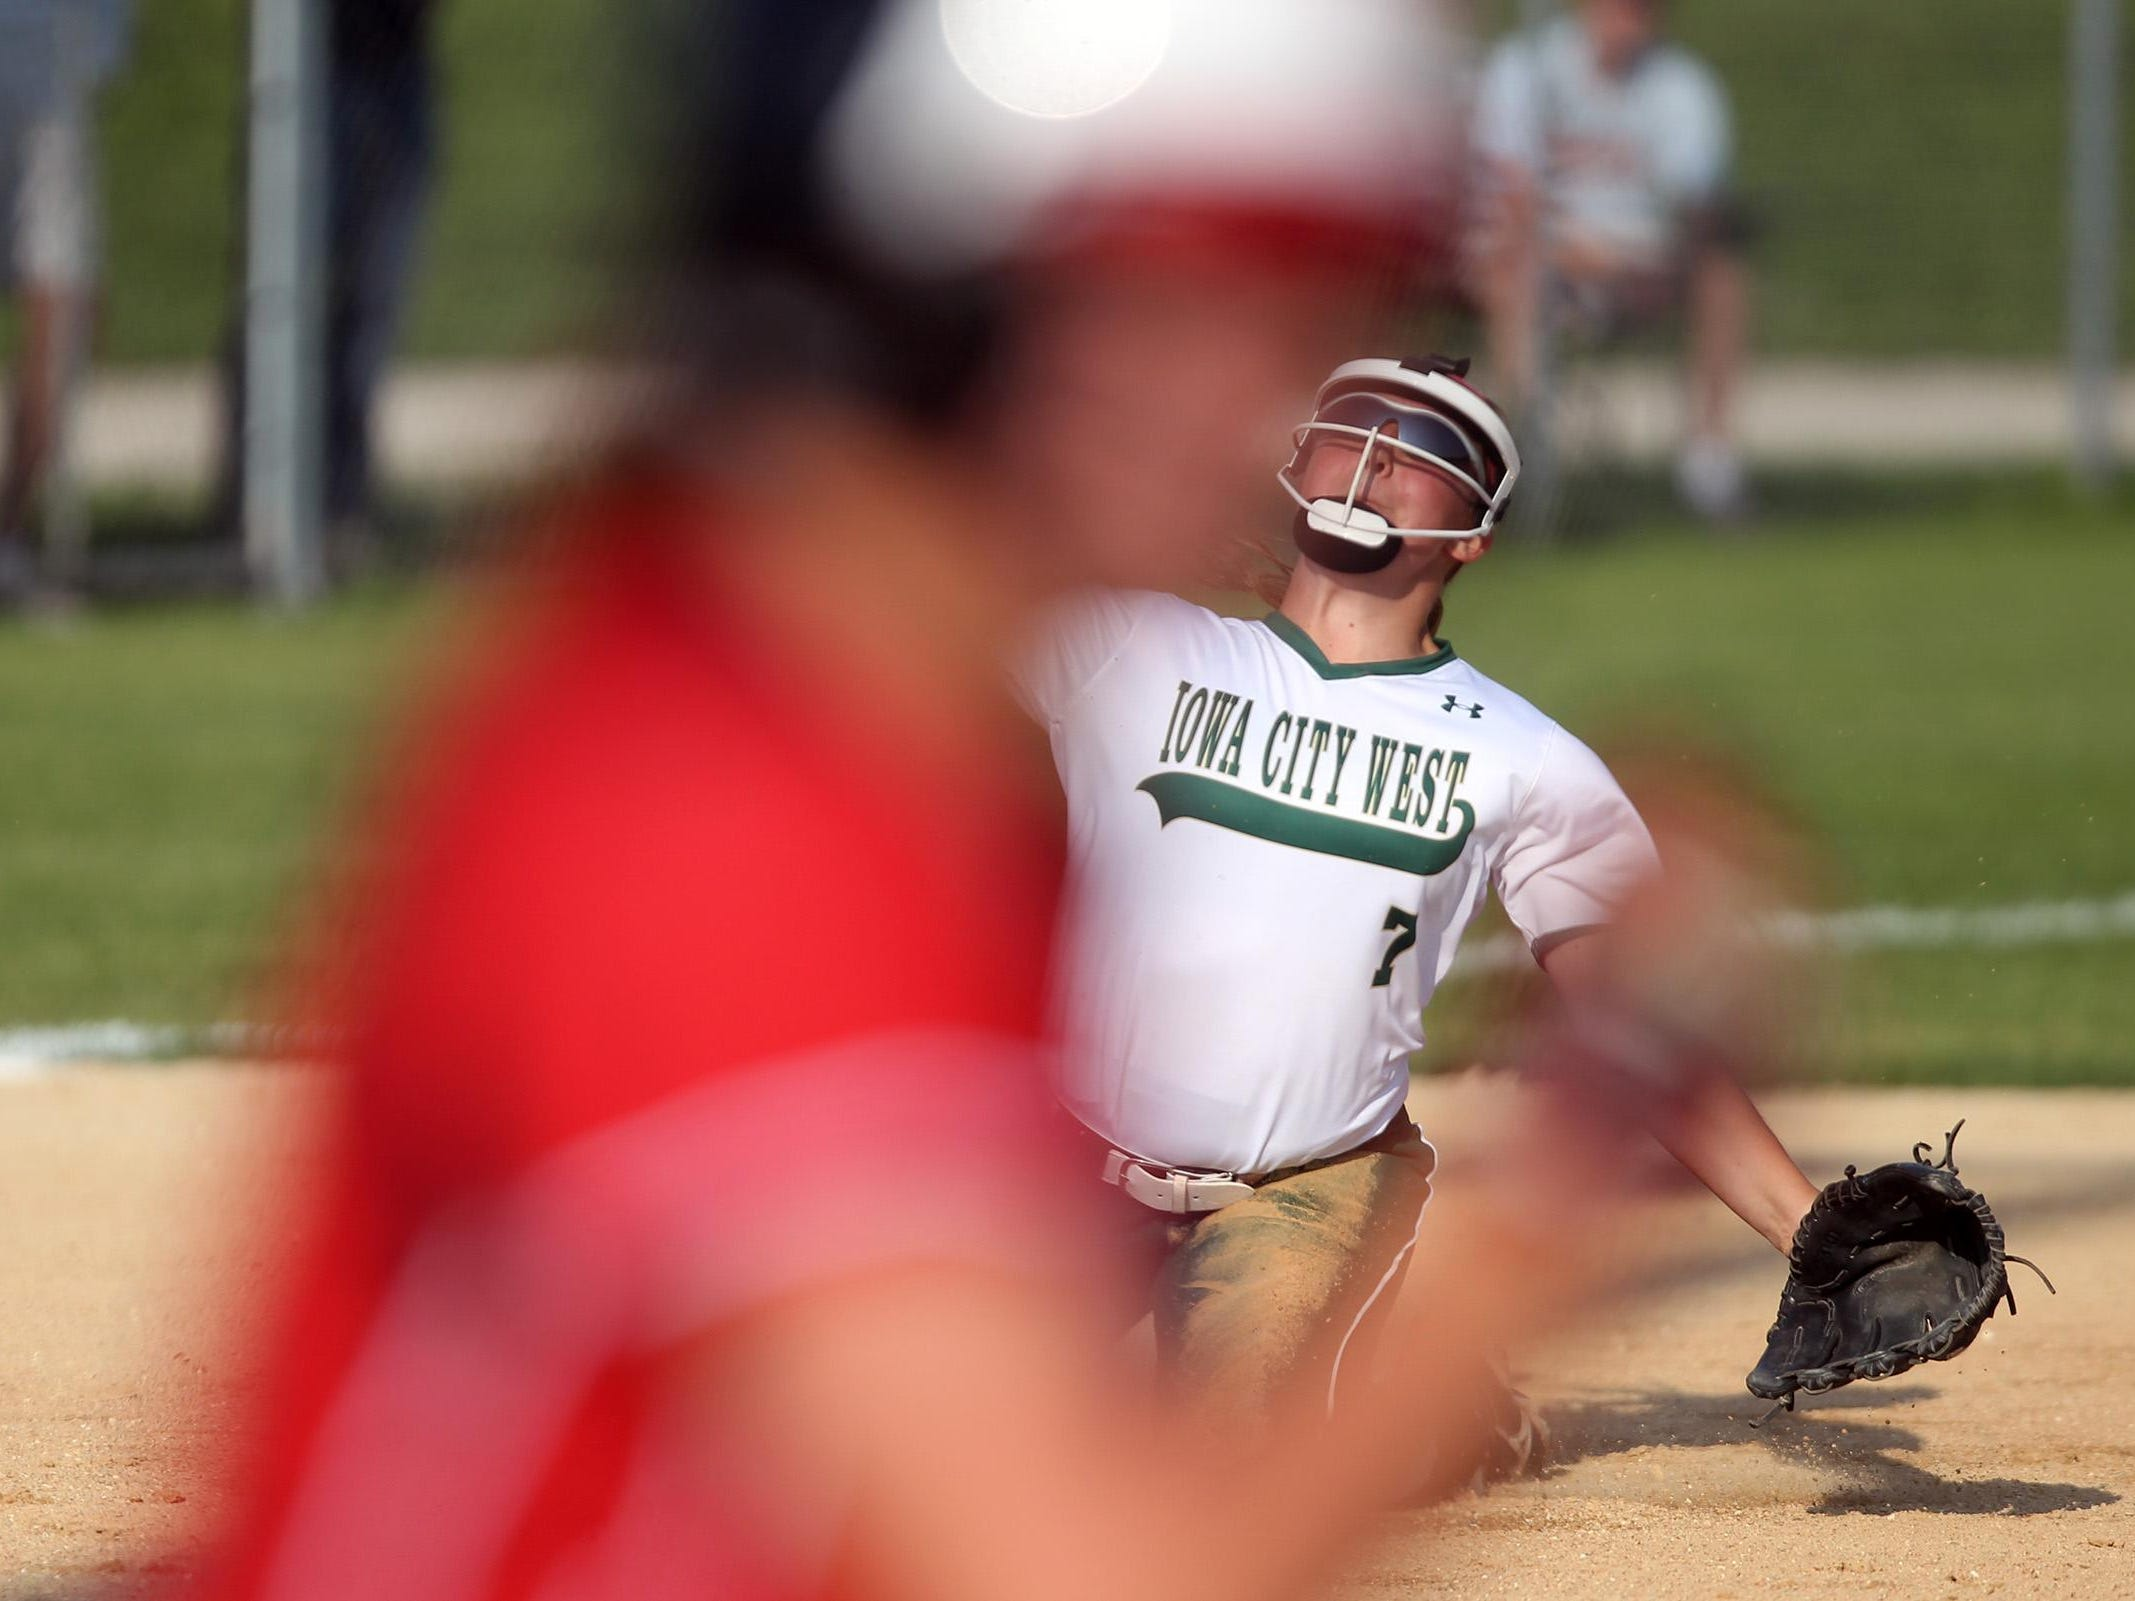 West High's Adara Opiola throws to first base during the Women of Troy's game against Linn-Mar on Thursday, July 9, 2015. David Scrivner / Iowa City Press-Citizen